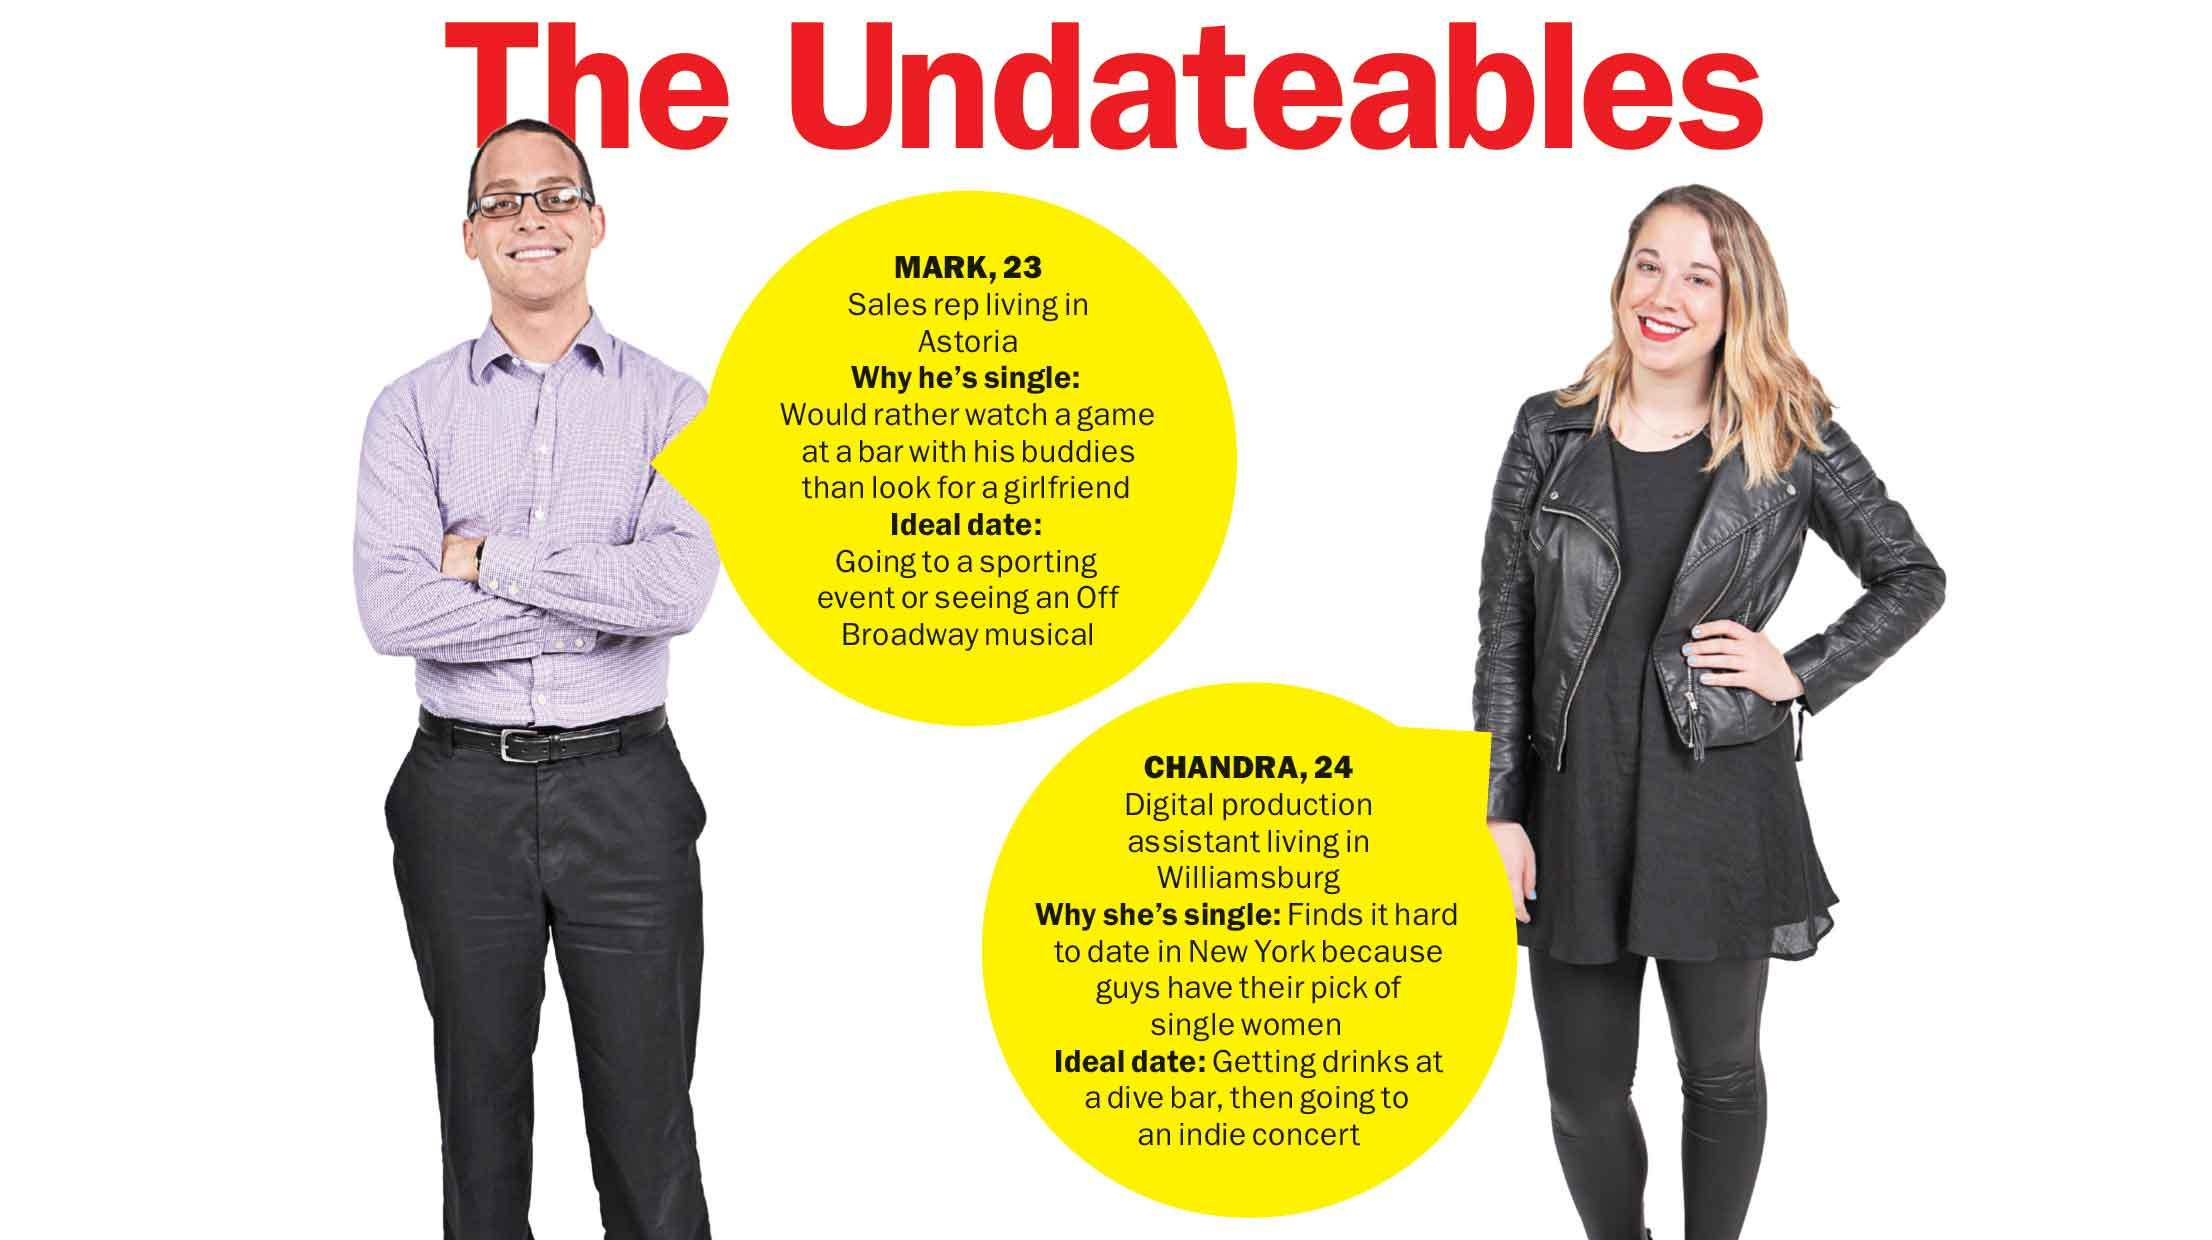 Meet the Undateables: Mark and Chandra